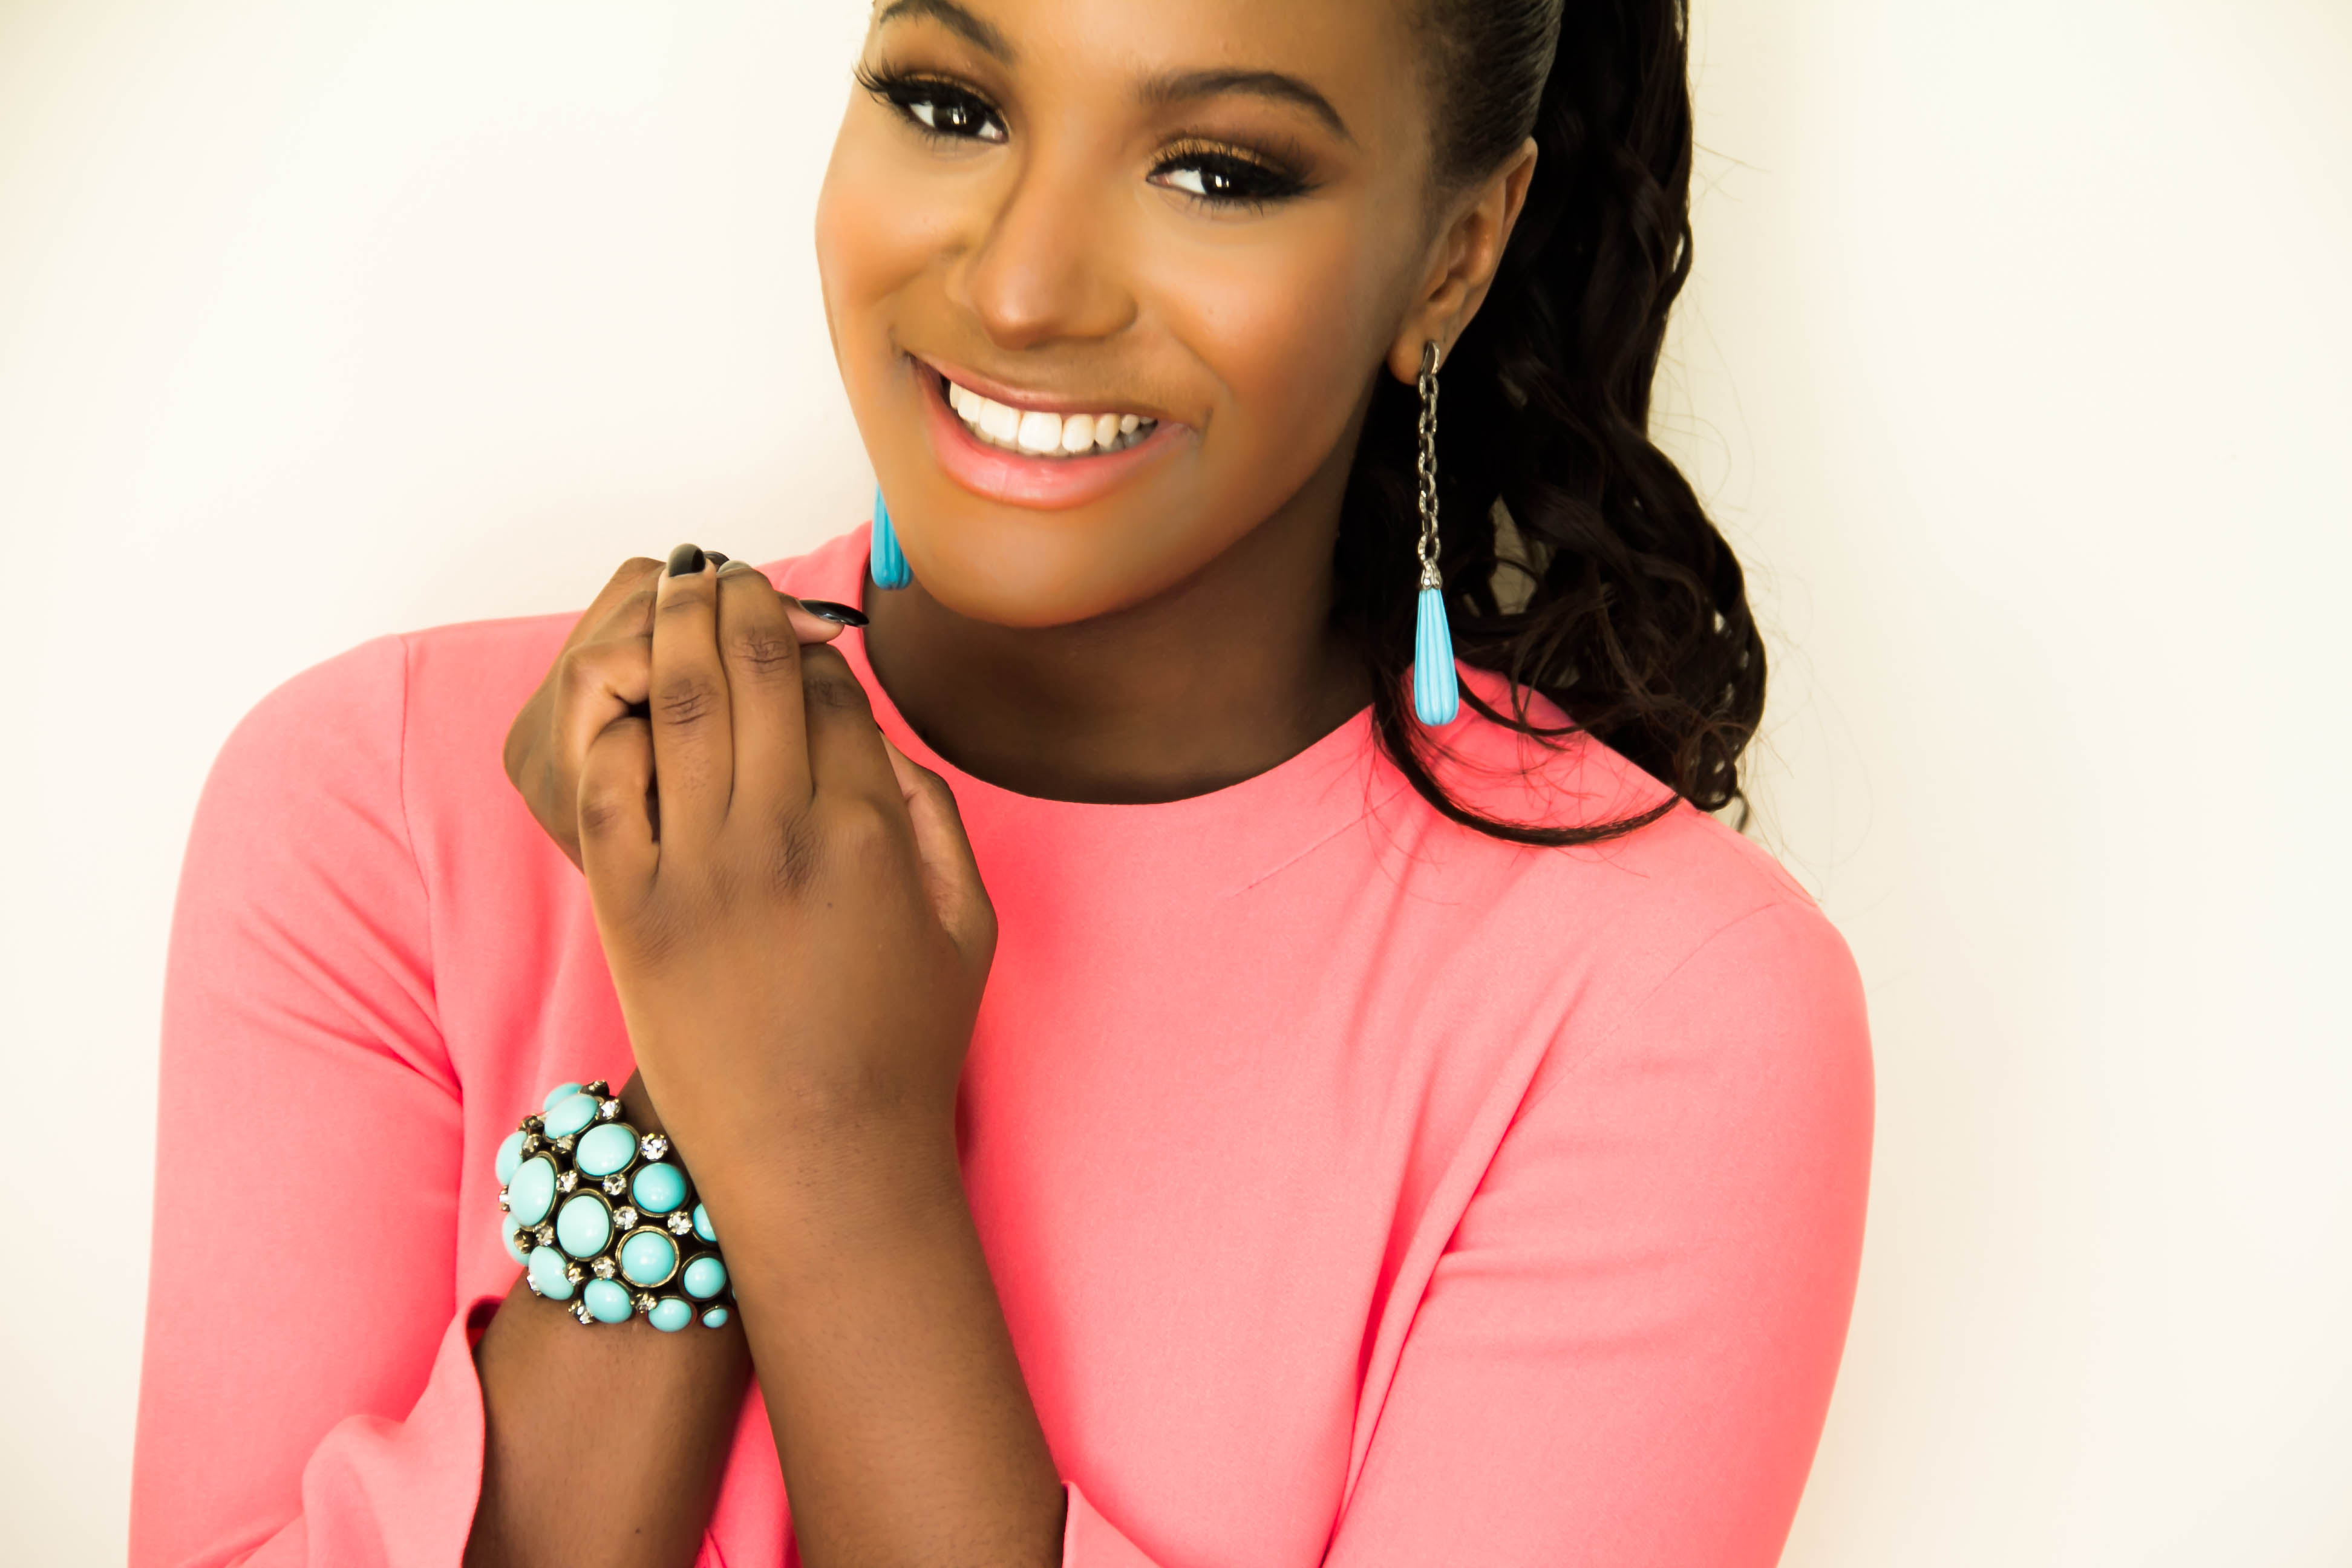 DJ Cuppy: Meet DJ Cuppy  a  producer ,songwriter, Tourism ambassador  and daughter of business mogul Femi Otedola